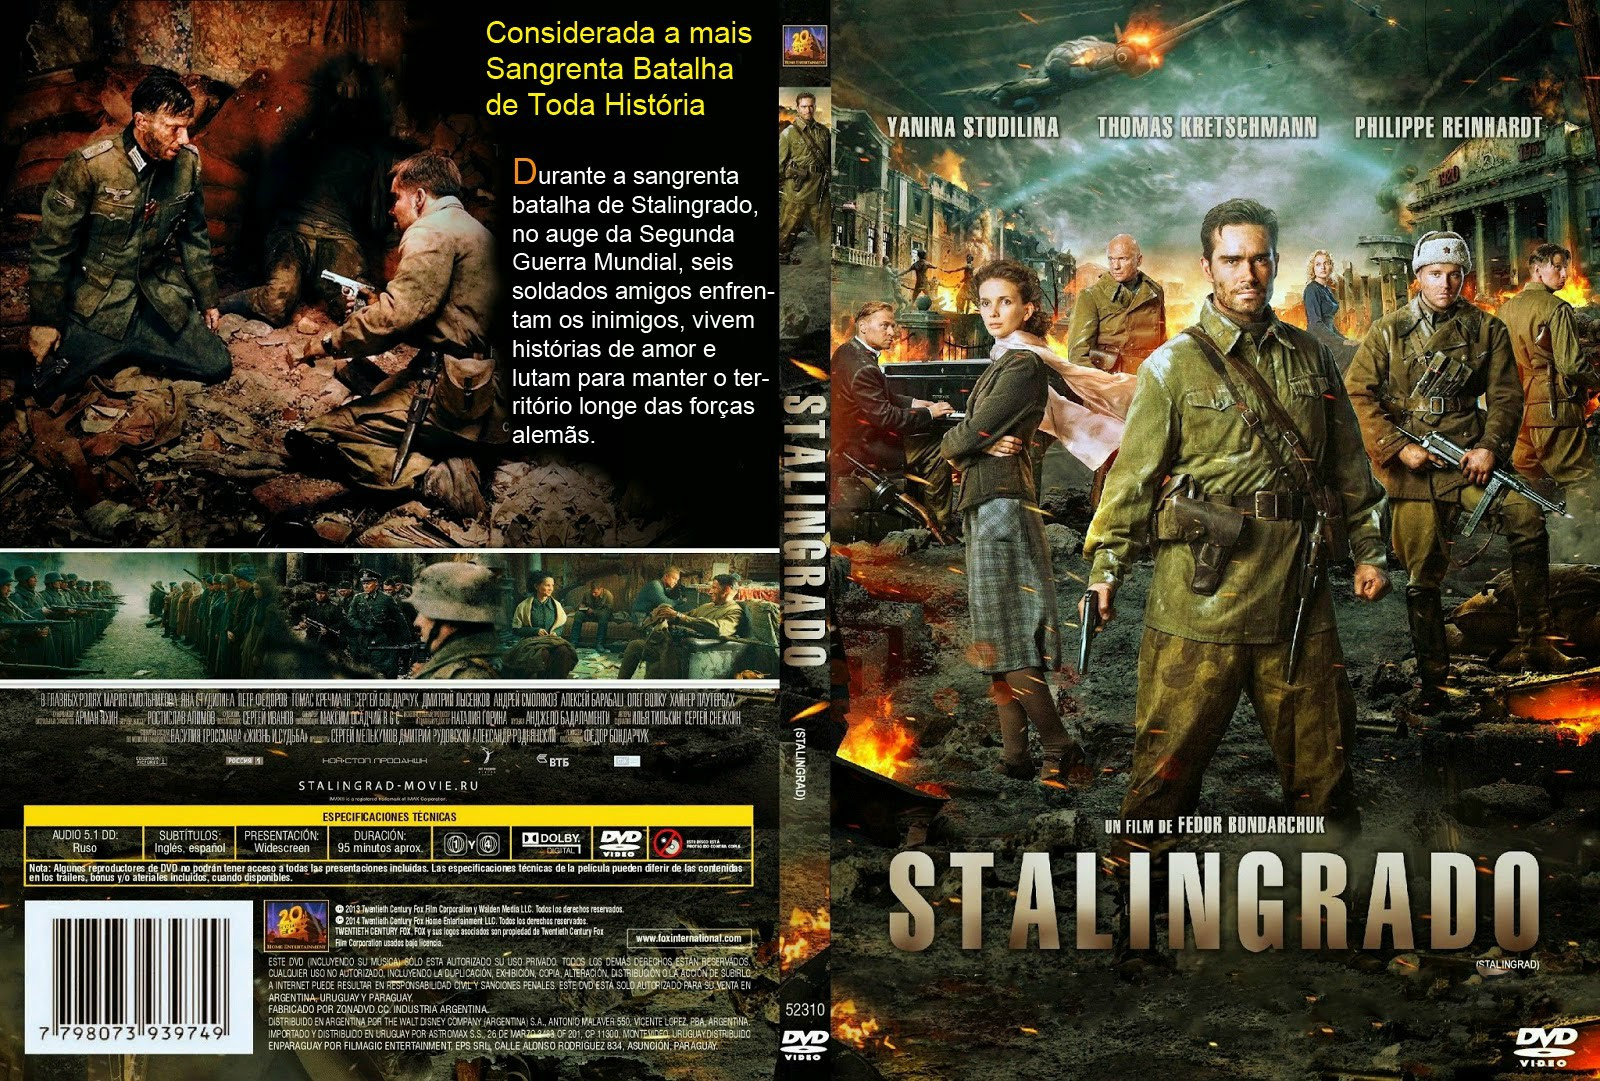 Stalingrado – A Batalha Final Torrent – BluRay Rip 1080p Dual Áudio 5.1 (2014)